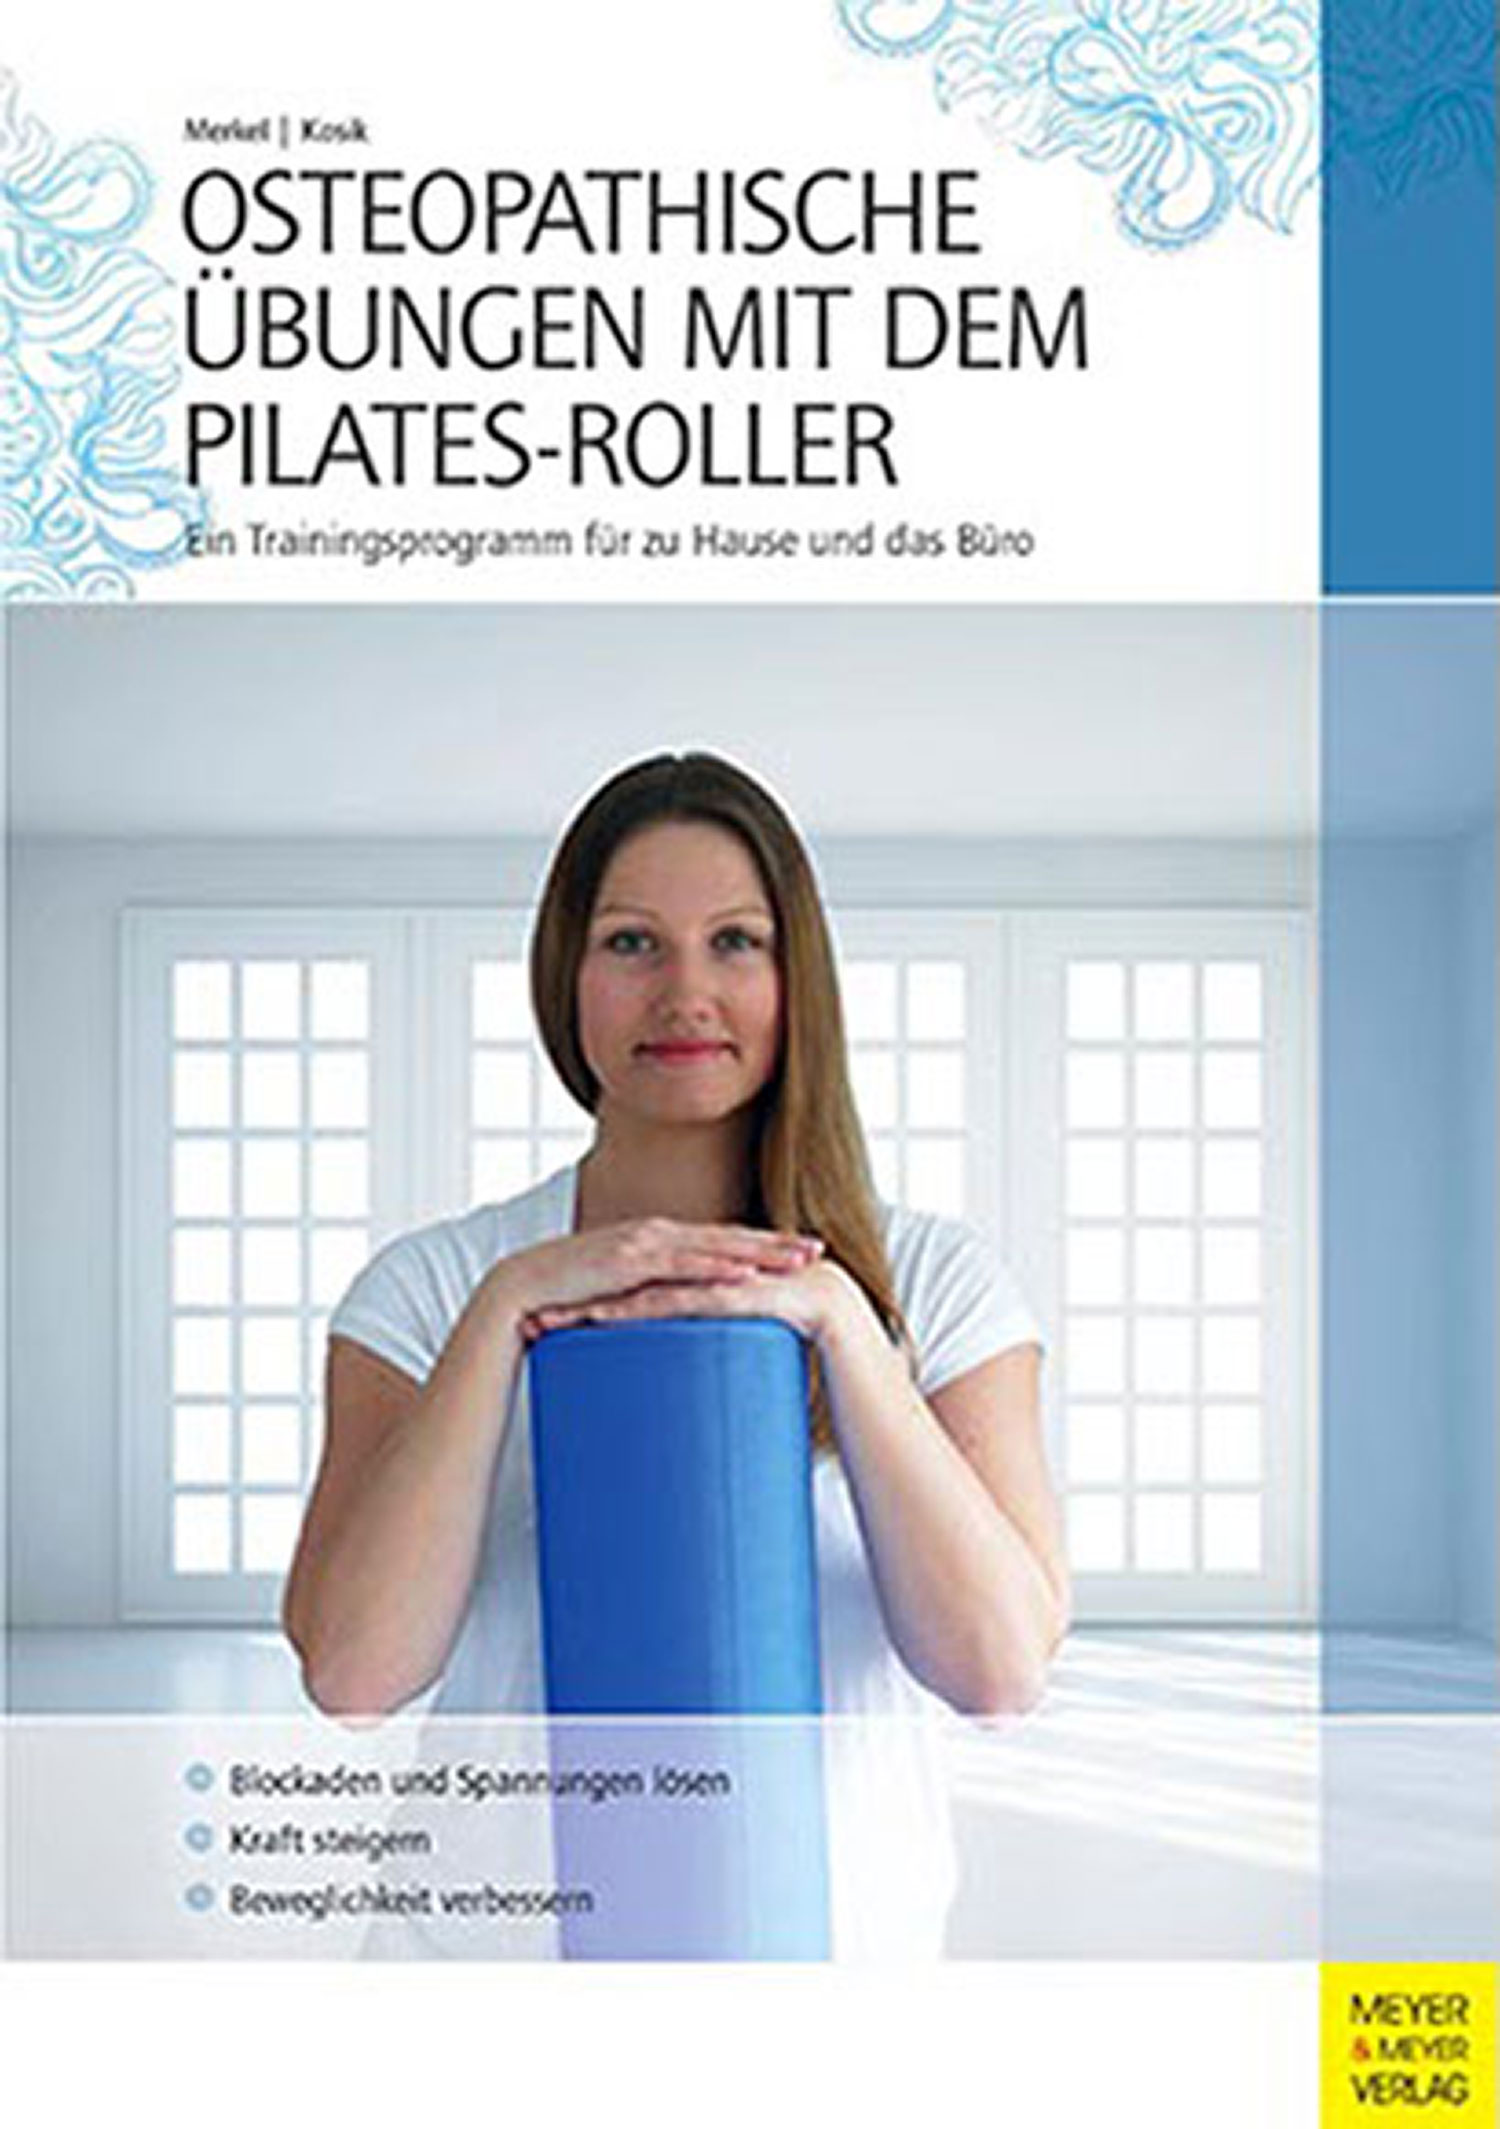 osteopathische bungen mit dem pilates roller online bestellen pilates. Black Bedroom Furniture Sets. Home Design Ideas